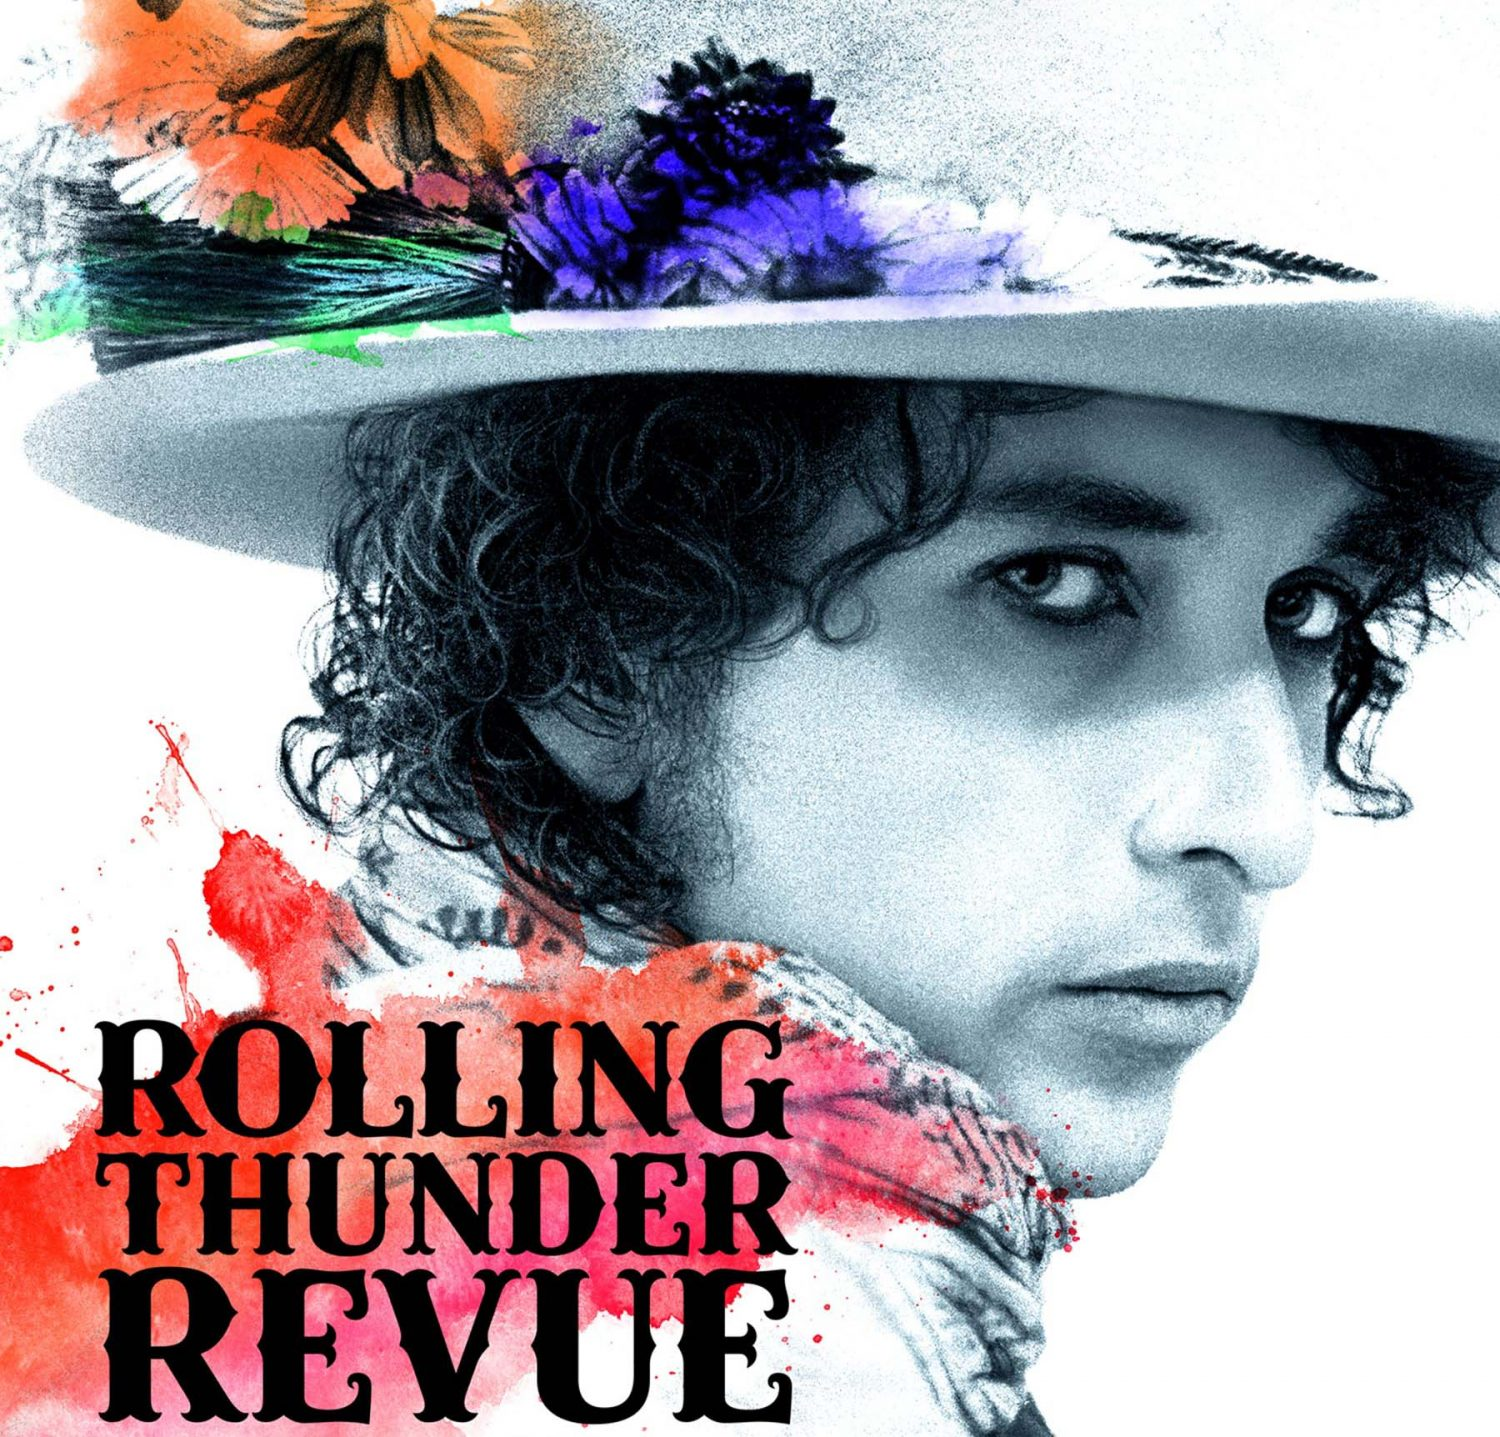 Netflix to release Martin Scorsese's film about Bob Dylan's